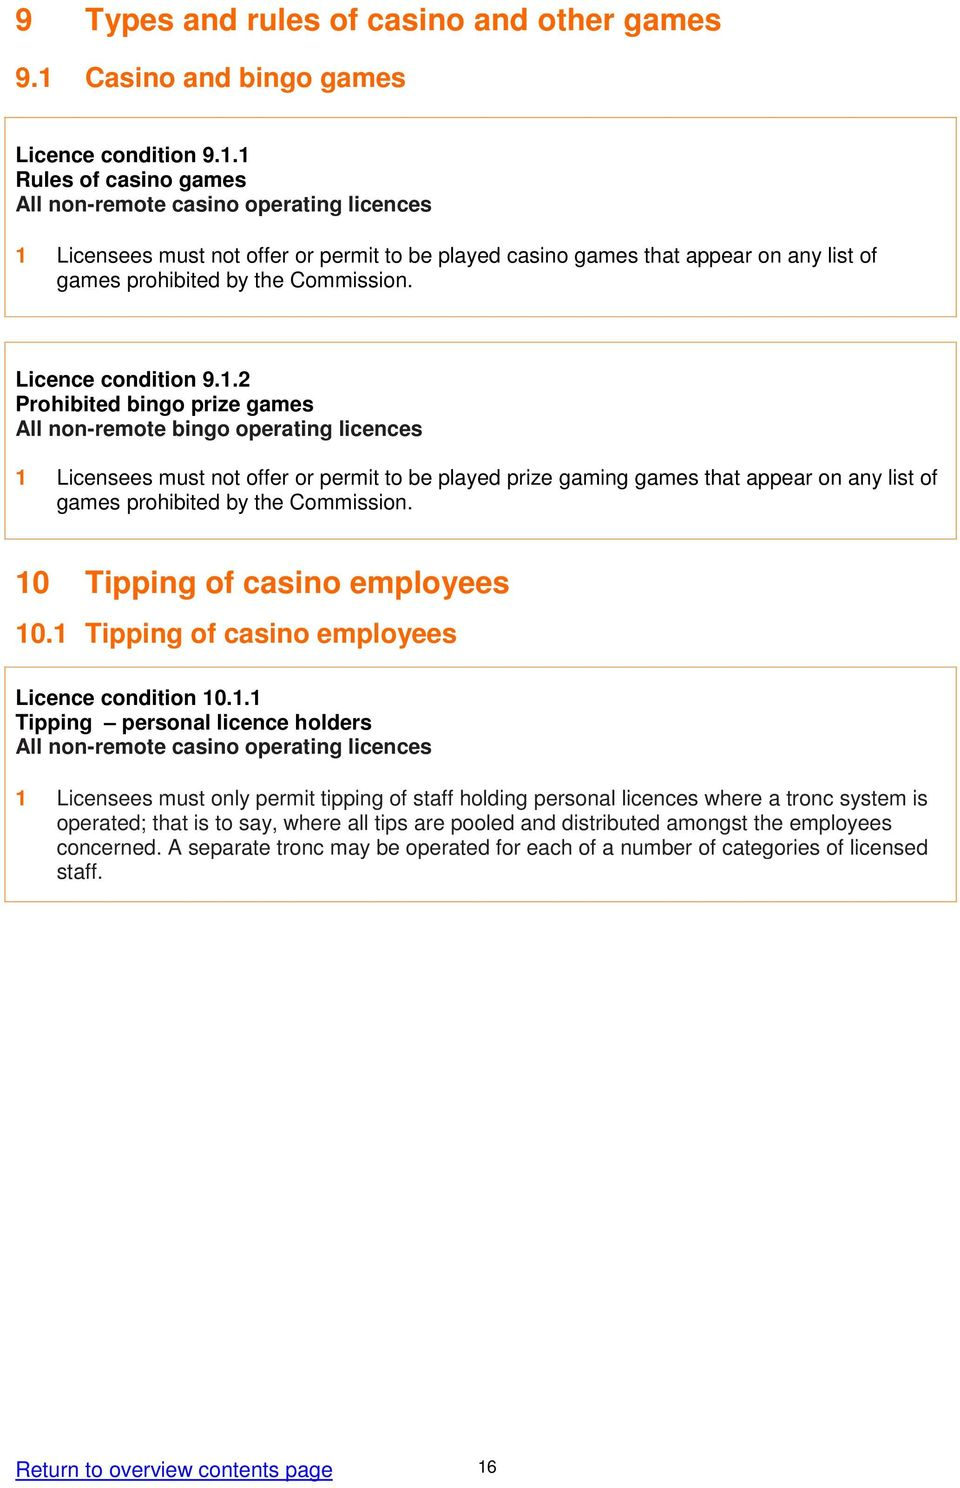 1 Rules of casino games All non-remote casino operating licences 1 Licensees must not offer or permit to be played casino games that appear on any list of games prohibited by the Commission.